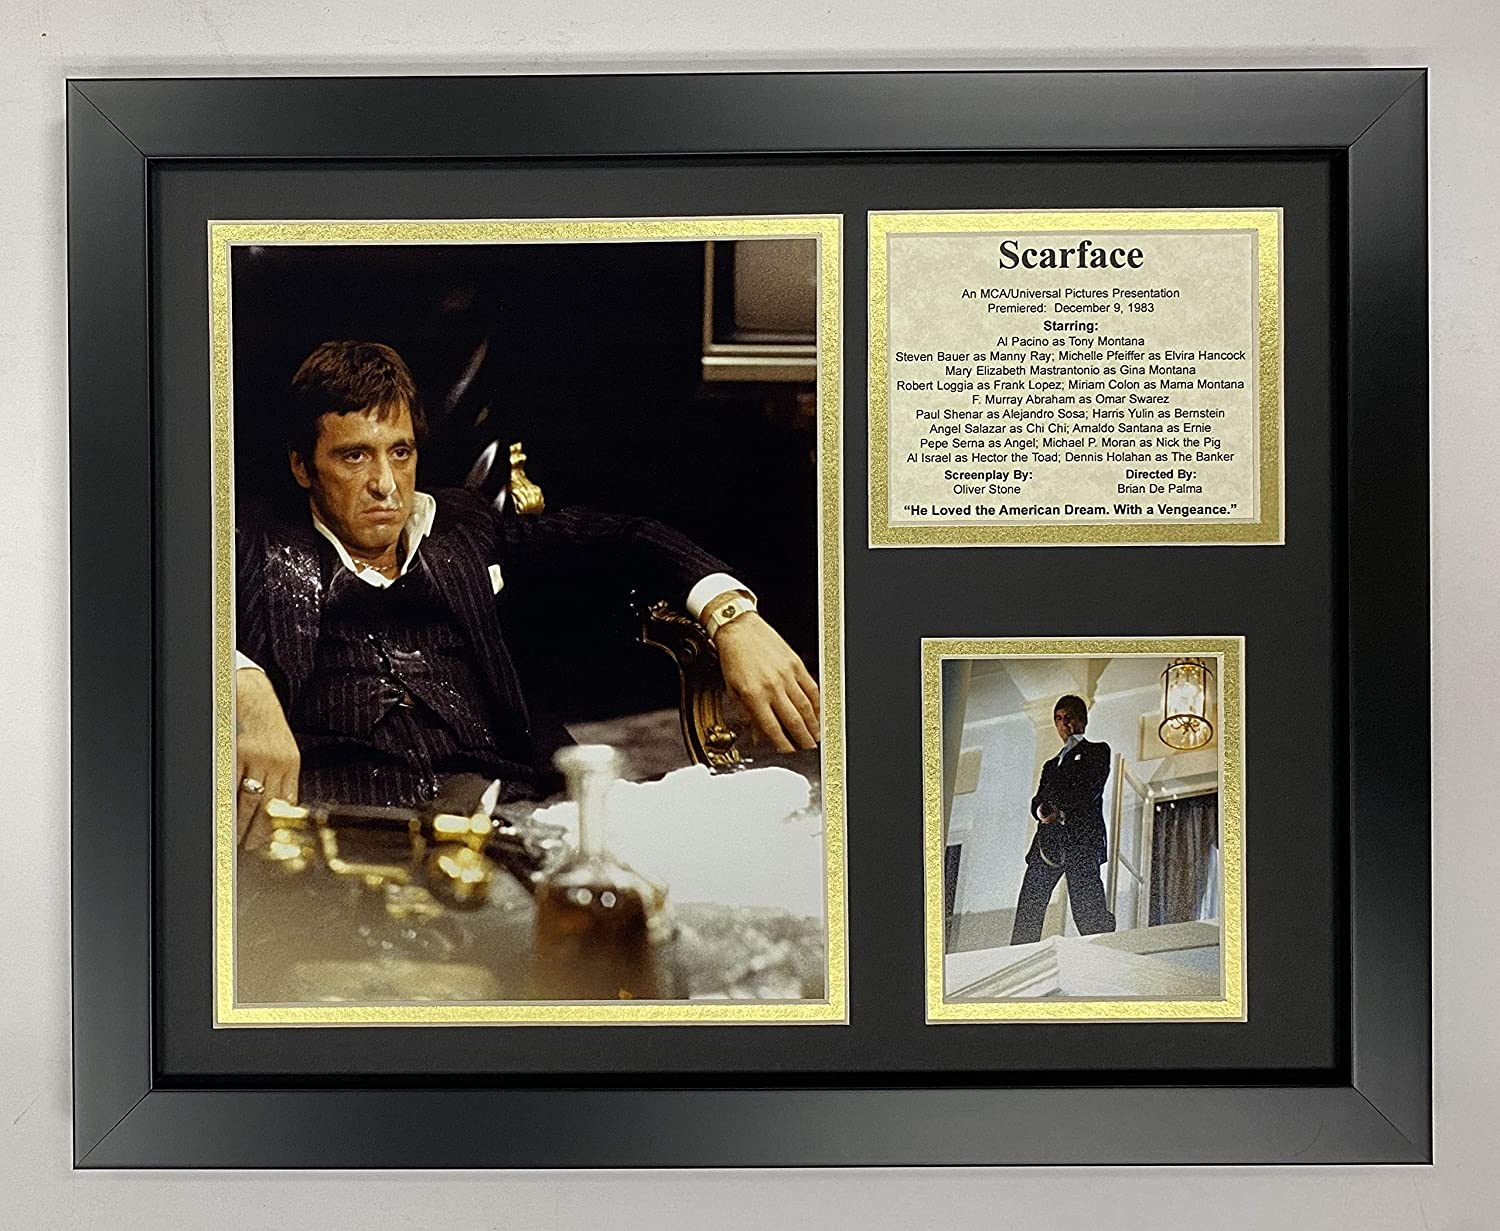 Legends Never Die Scarface- Al Pacino The Drug King of Miami Collectible | Framed Photo Collage Wall Art Decor - 12